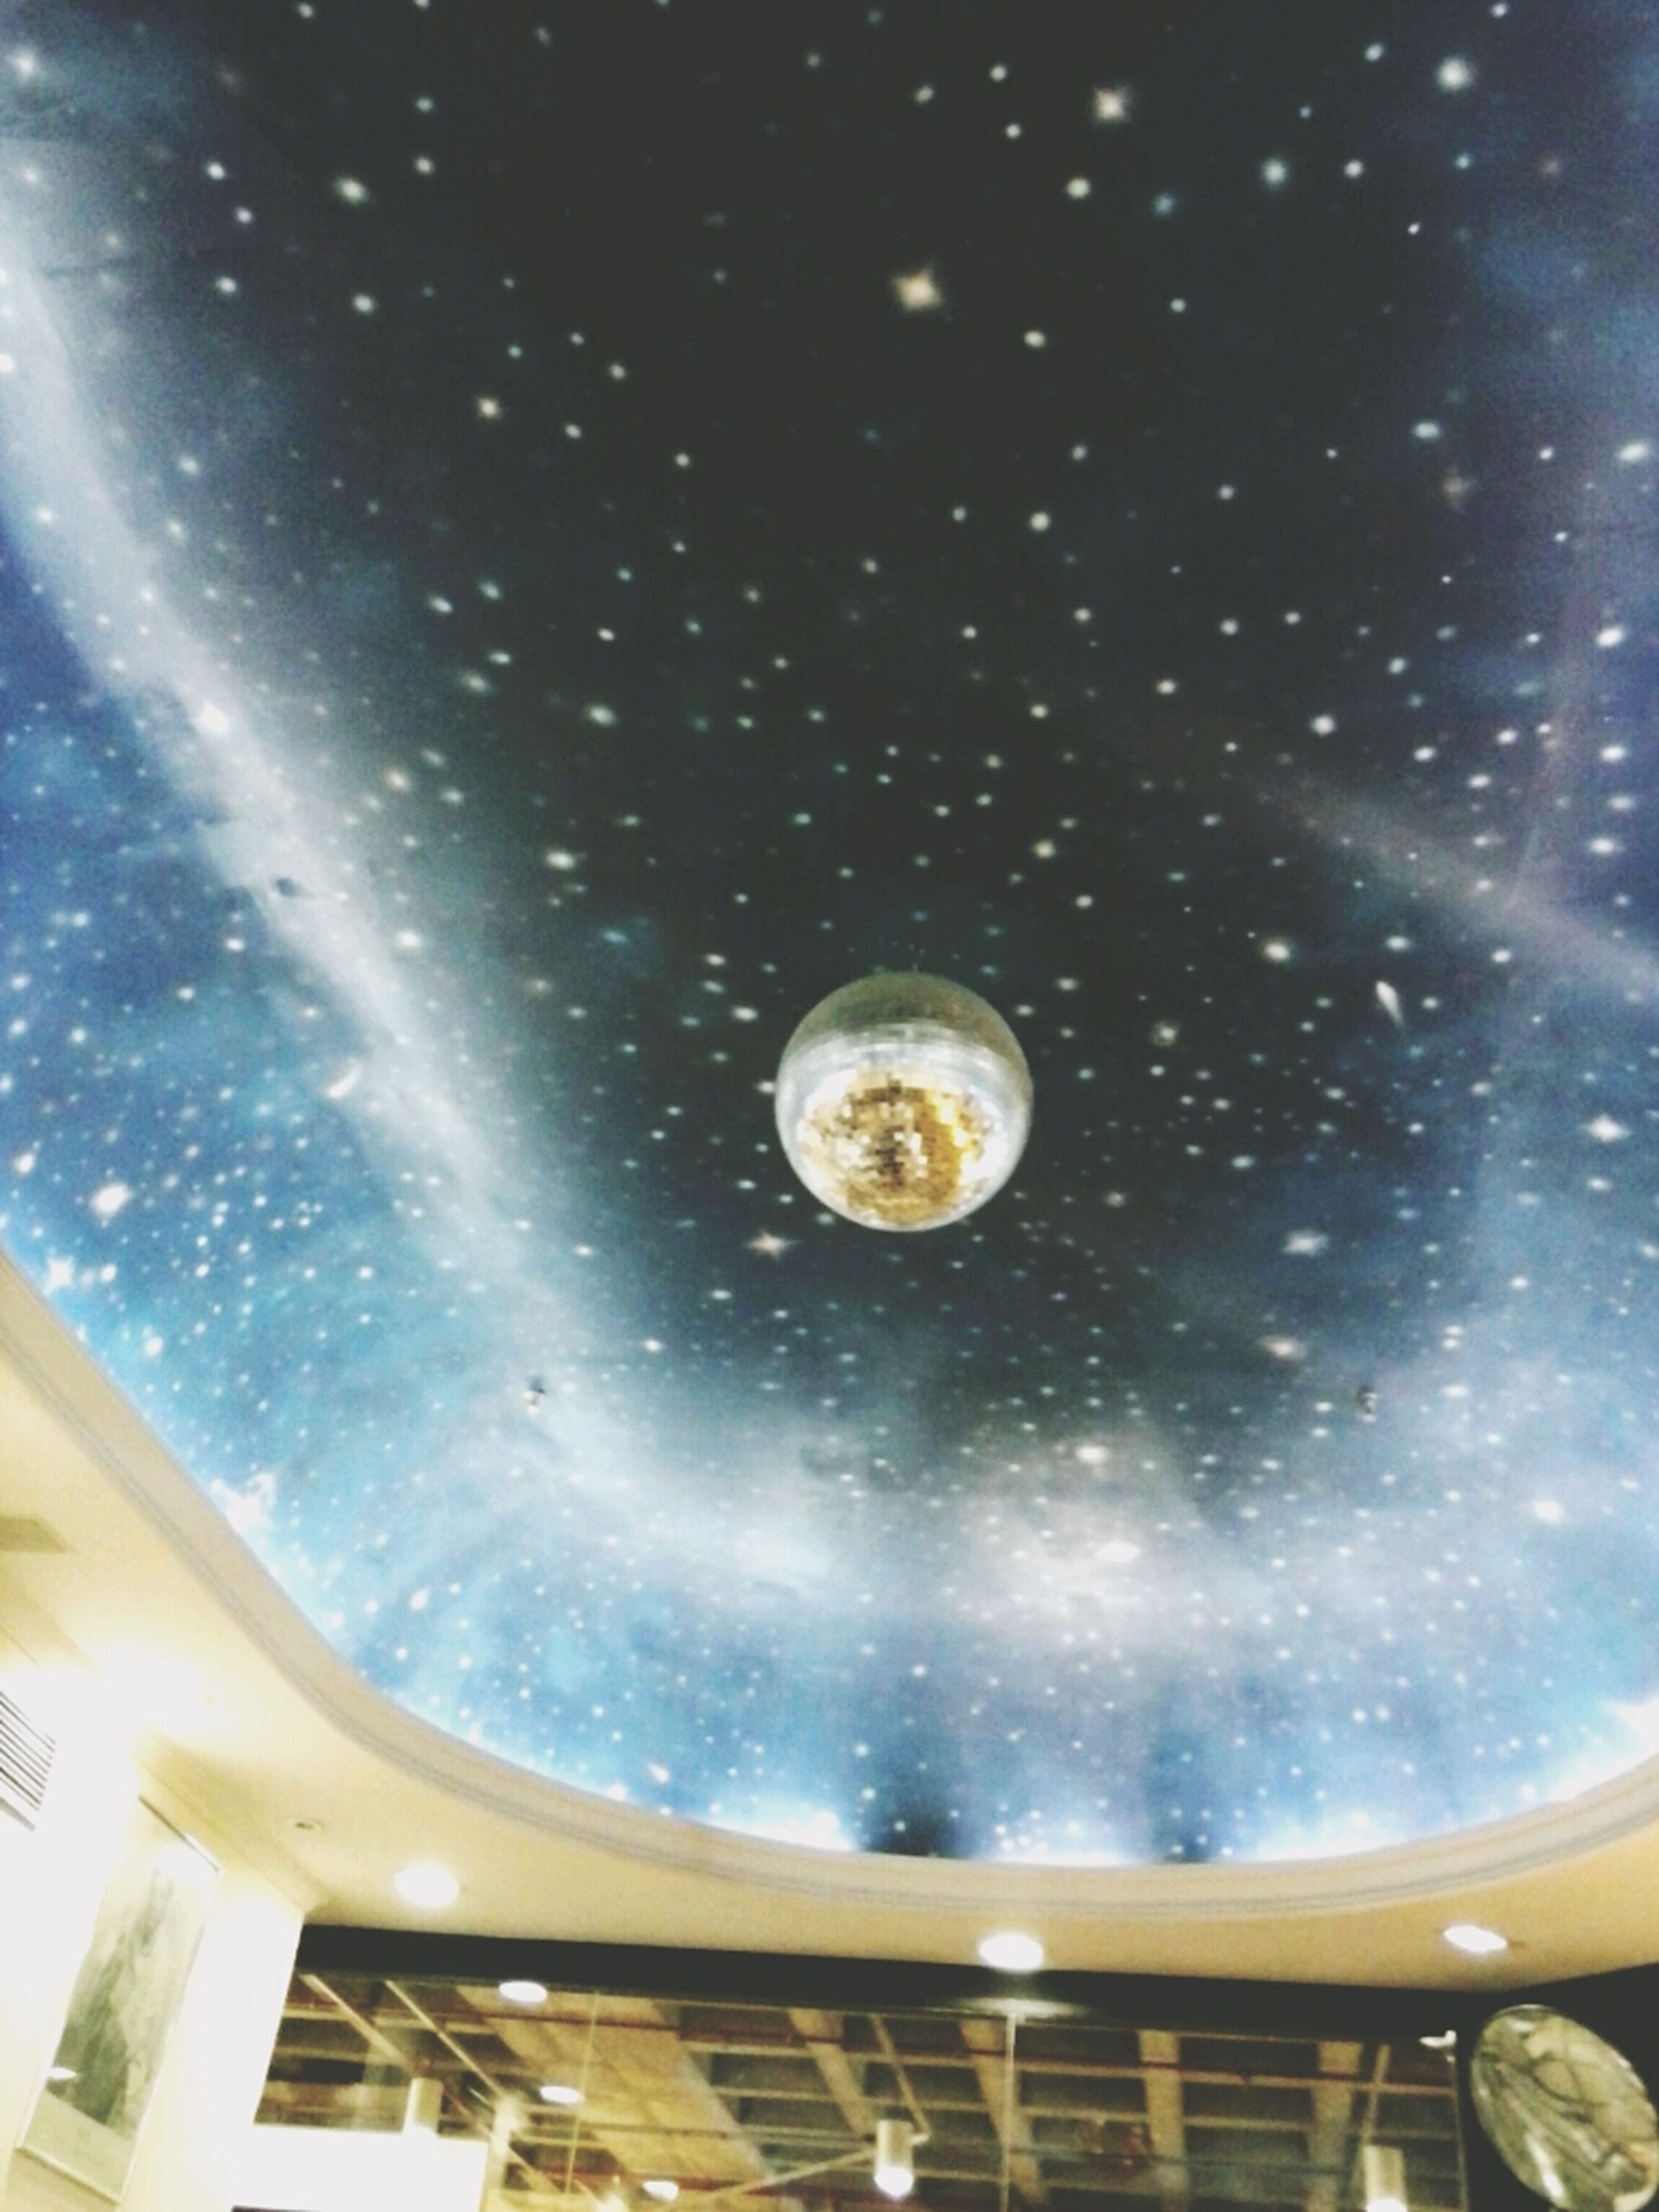 circle, low angle view, part of, night, geometric shape, sky, built structure, airplane, no people, indoors, ceiling, air vehicle, flying, transportation, astronomy, shape, architecture, glass - material, fish-eye lens